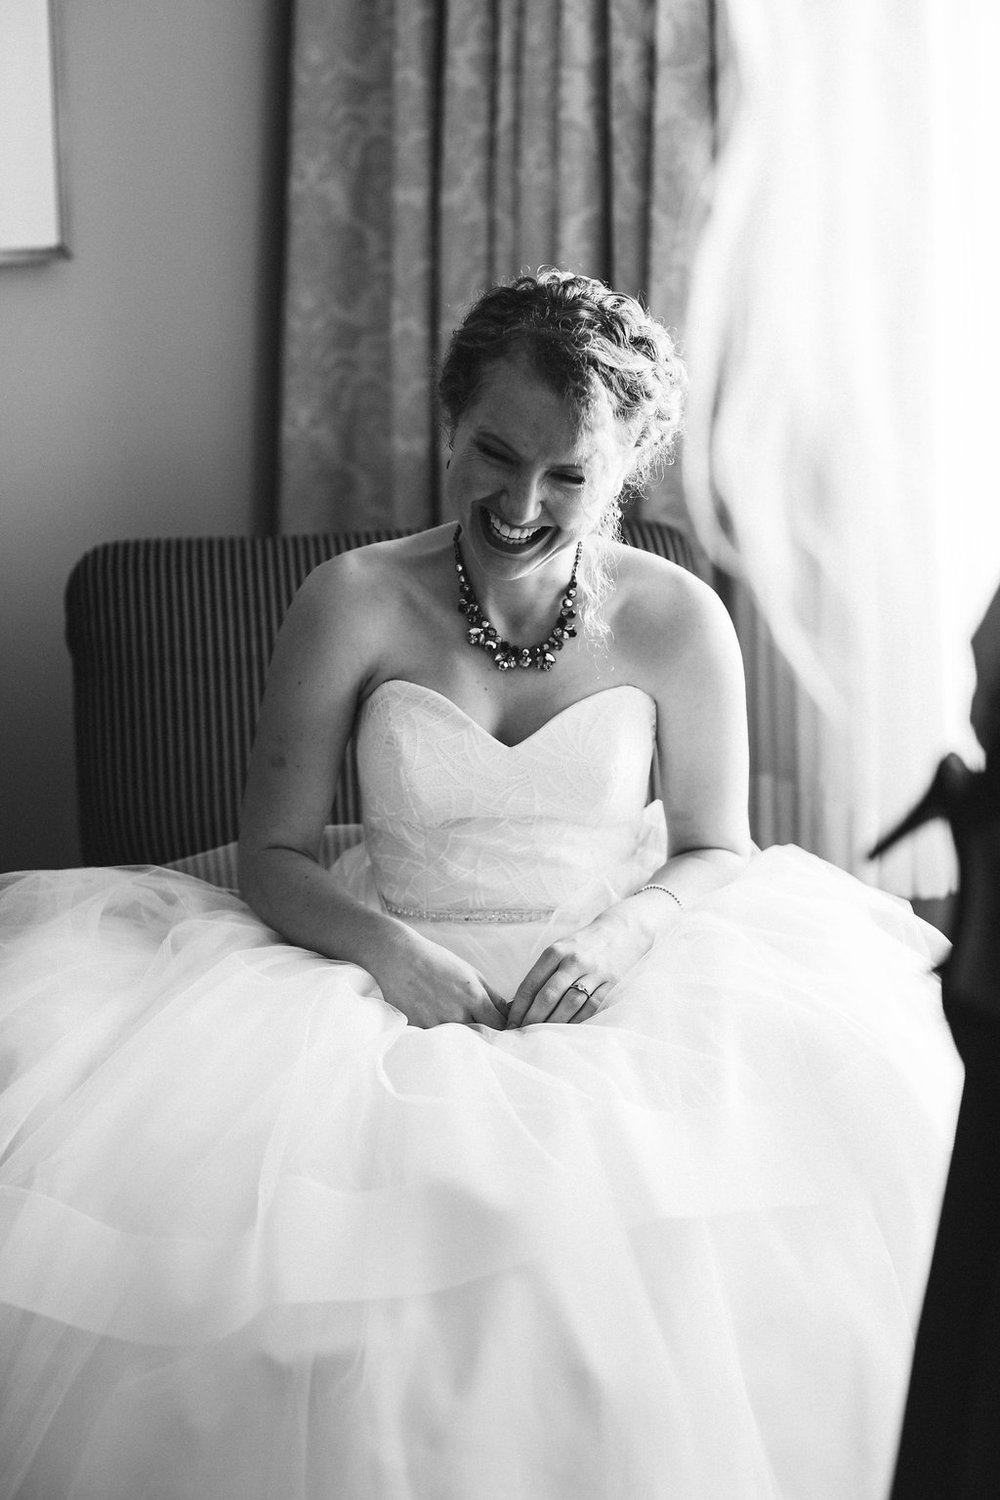 Nissa+Jesse_Wedding_Seattle_SoleRepairShop_6252015_23.jpg